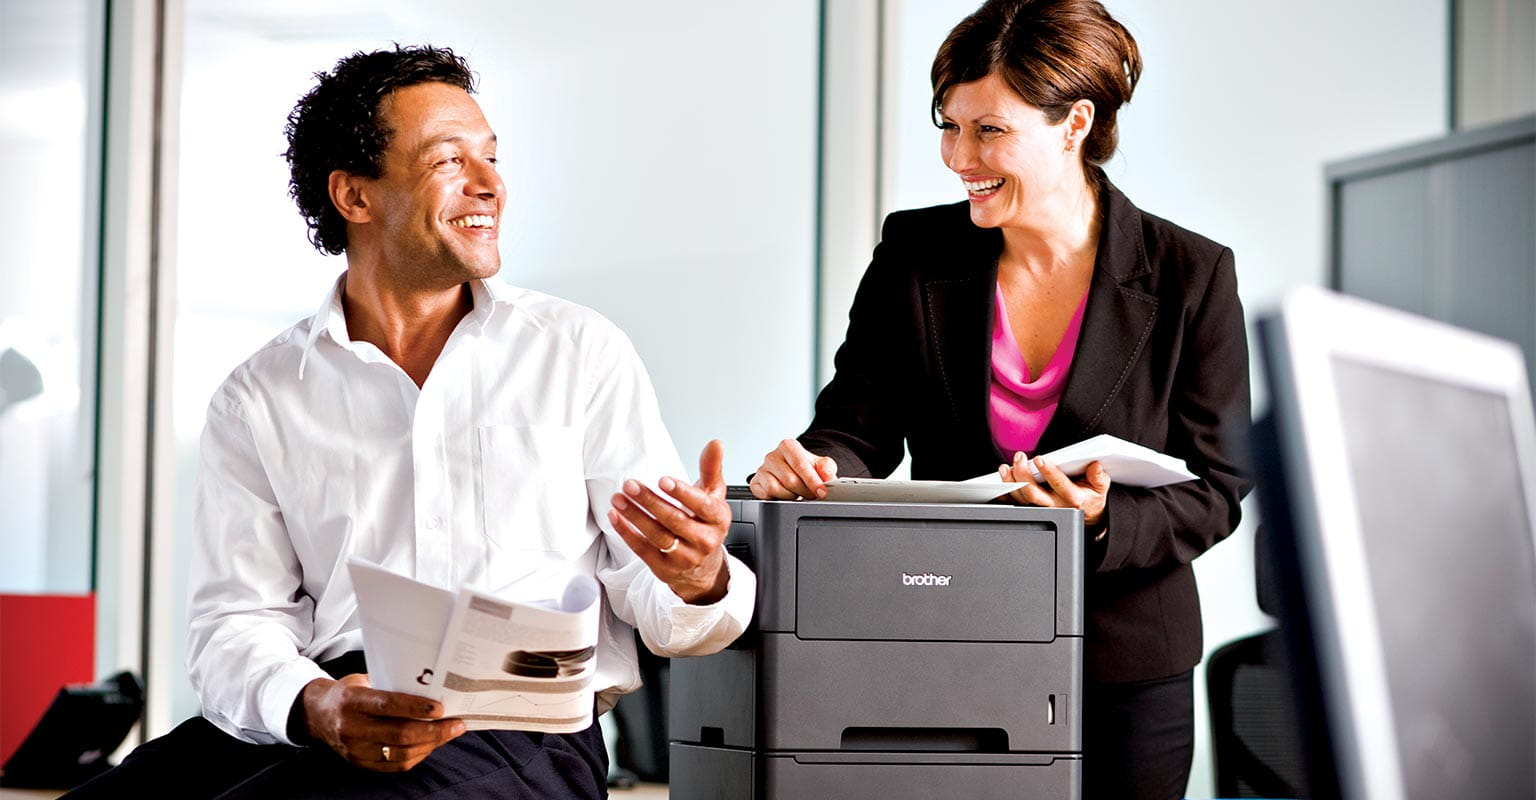 scene showing a discussion of Manage Print Services frequently asked questions